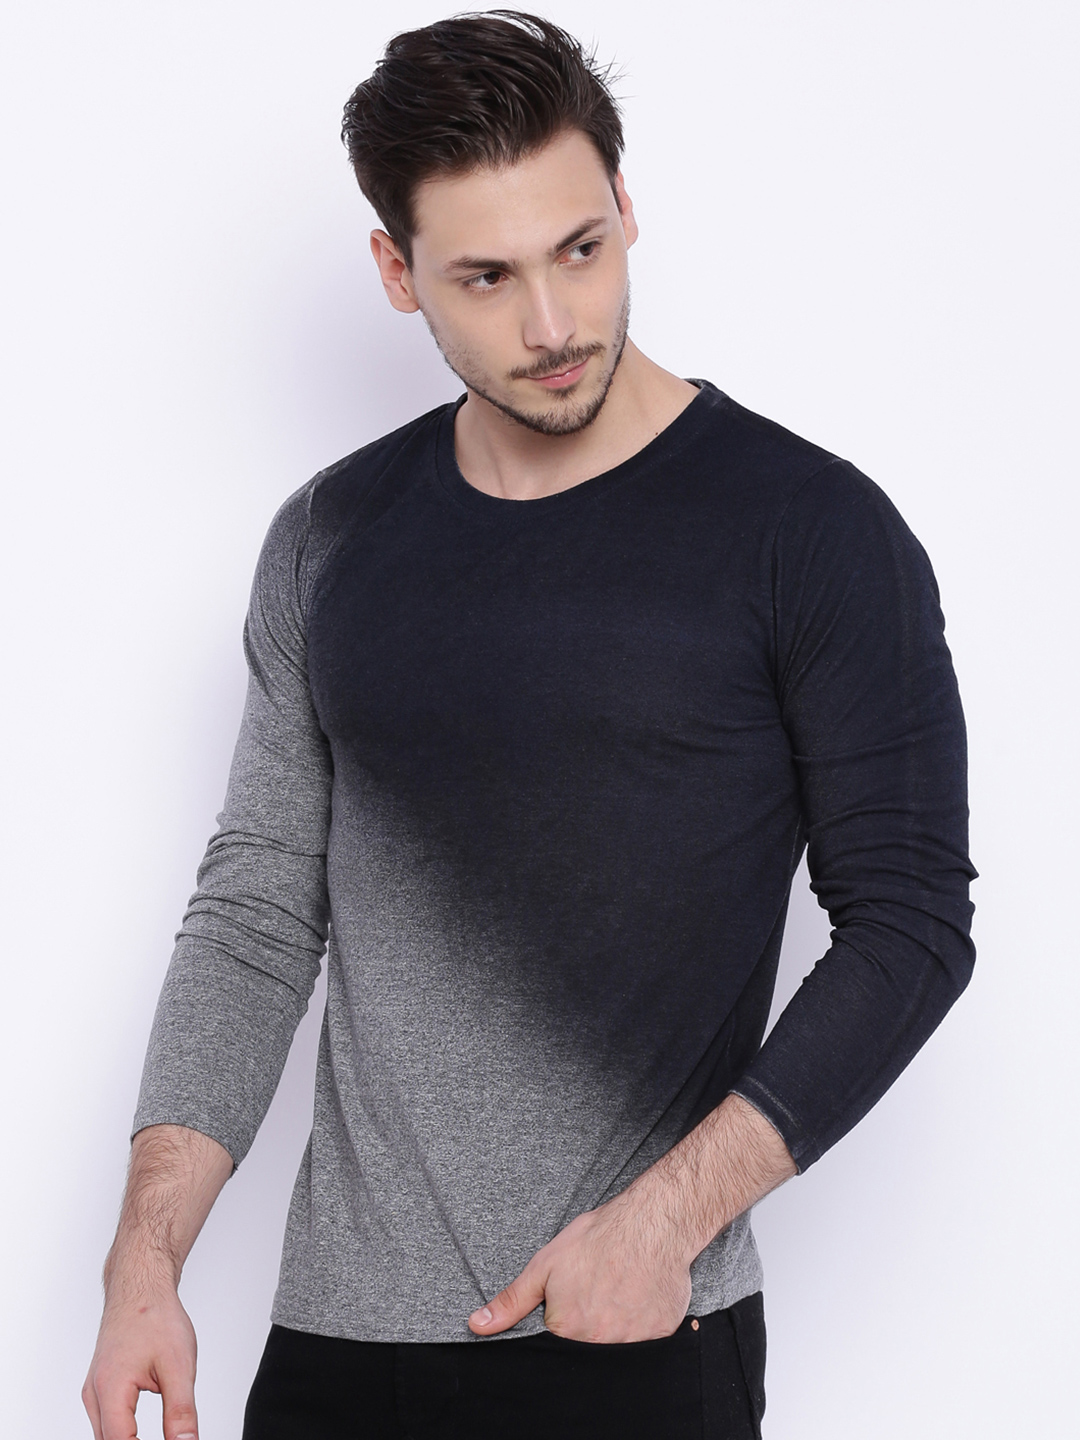 T shirts purchase information t shirts buying leads from for Best mens t shirt brands